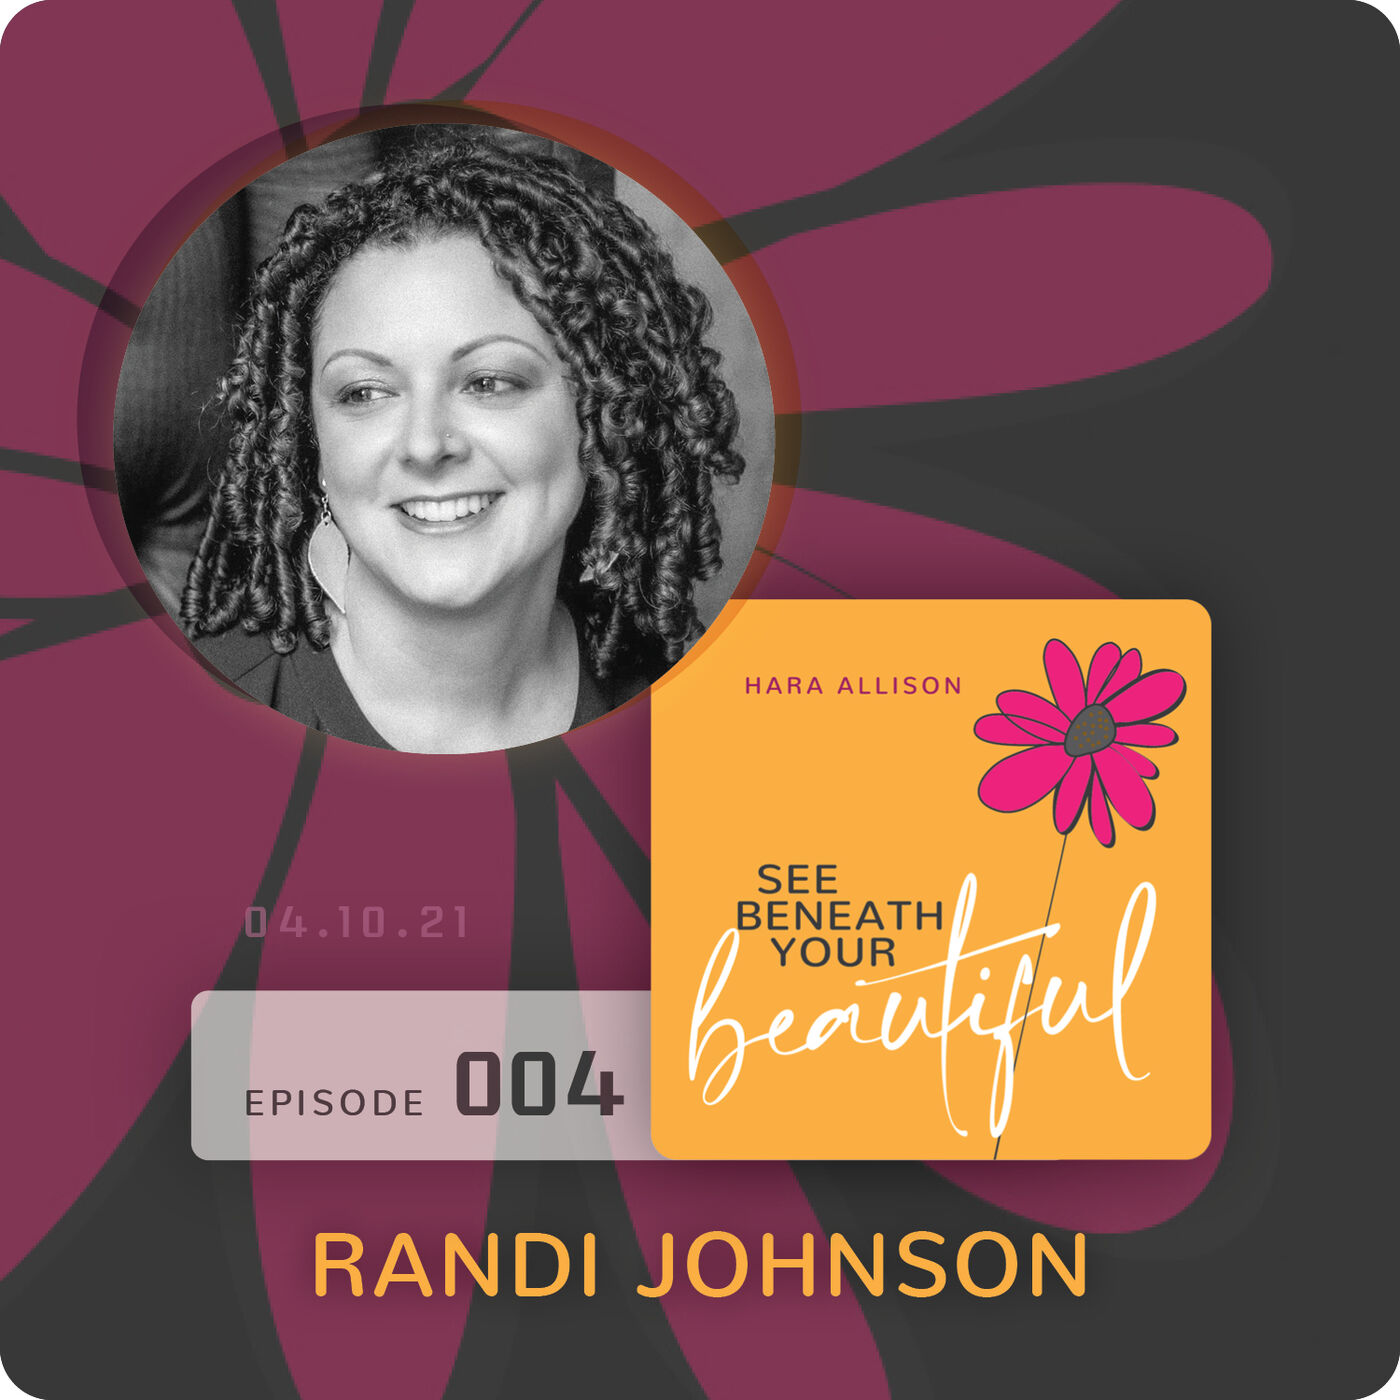 004. Randi Johnson discusses love, death, religion, family, law, woo and more